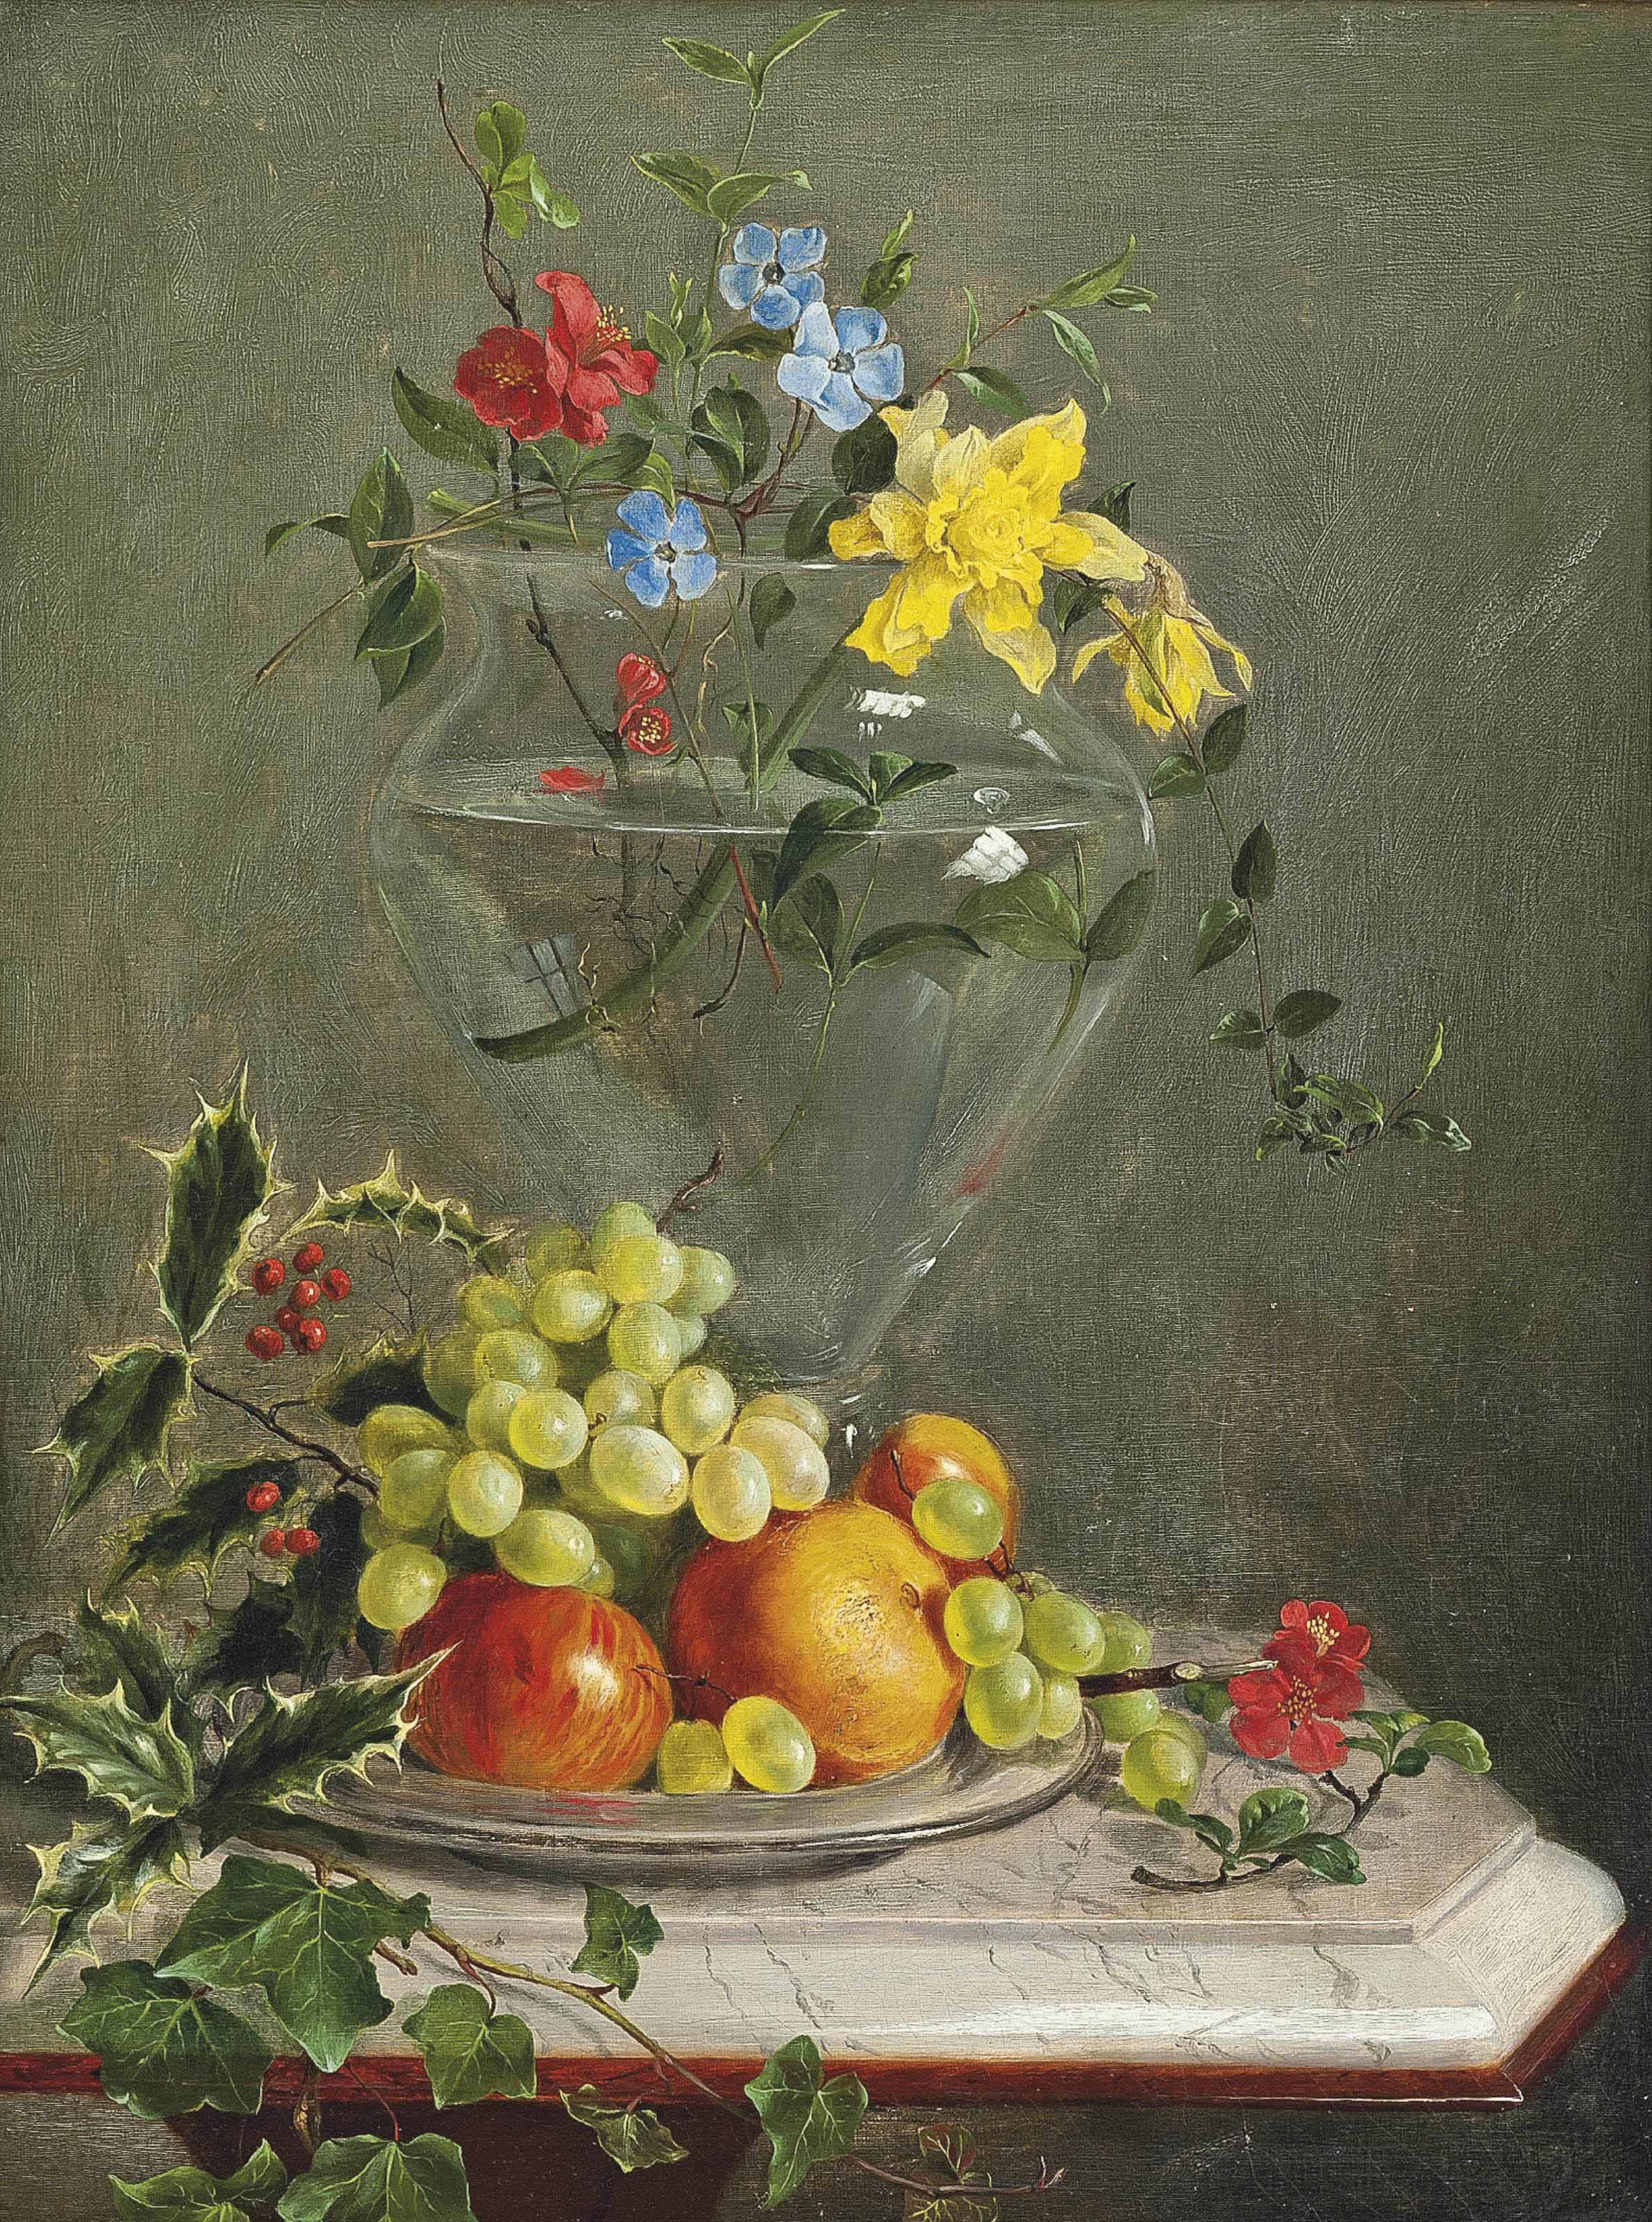 Holly, ivy, grapes, apples and oranges in a bowl by a vase of flowers including daffodils and phlox, on a marble ledge